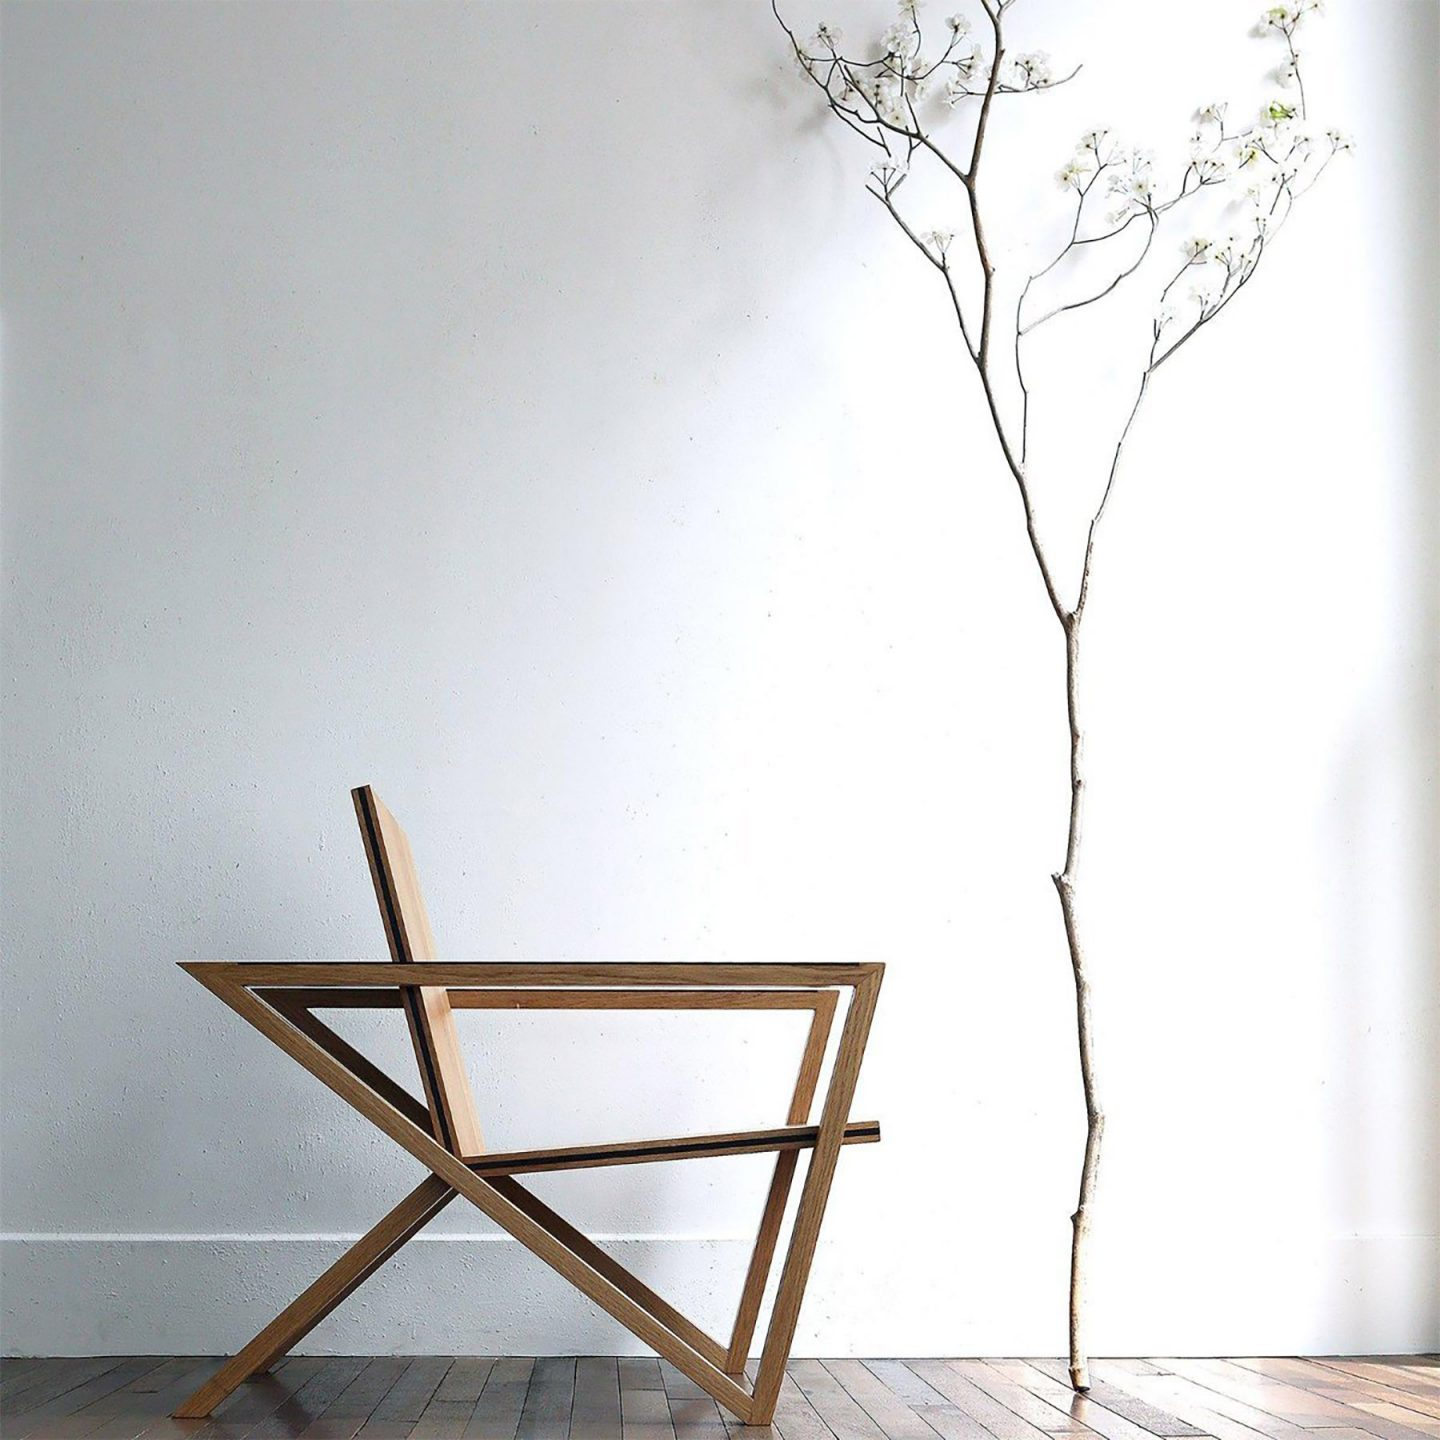 iGNANT-Design-ADesign-Awards-Line-Chair-Hyojoo-001